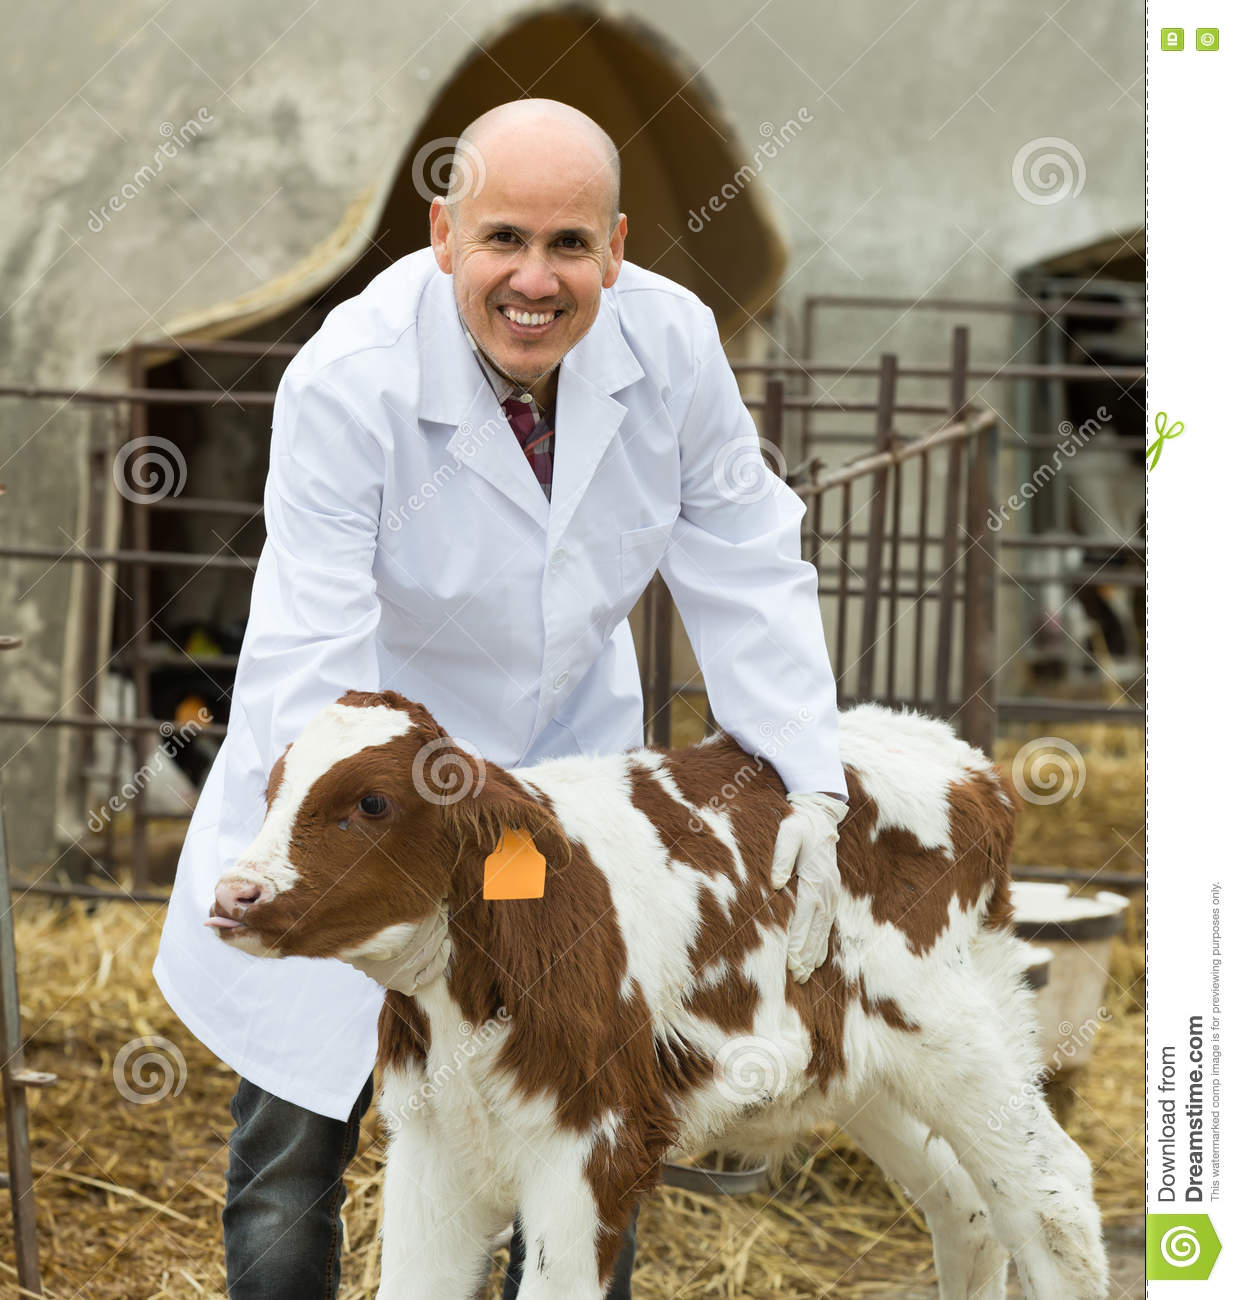 how to become a livestock veterinarian